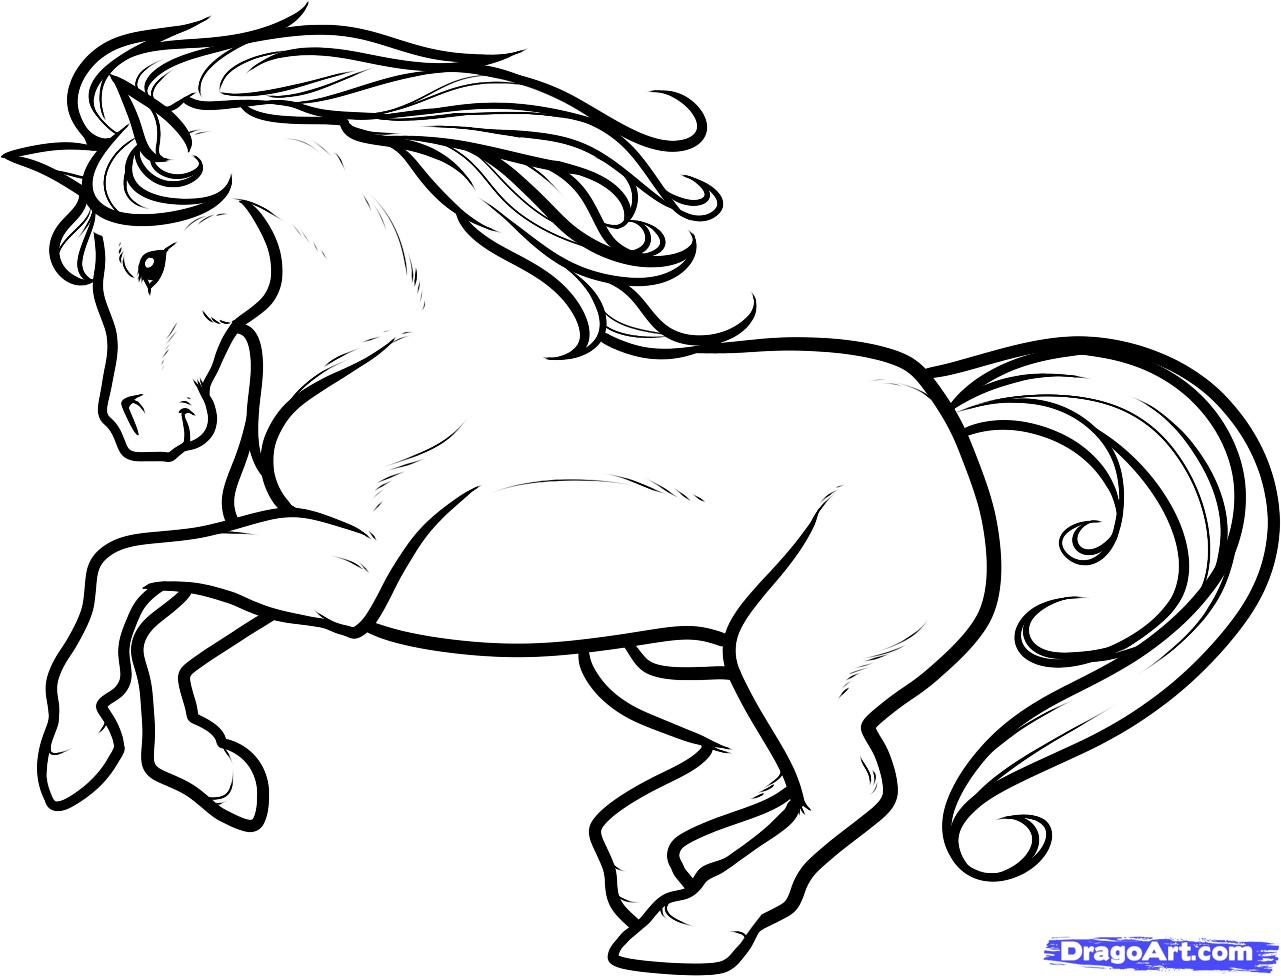 Horse Black And White Drawing at GetDrawings.com | Free for personal ... for Horse Cartoon Drawing  150ifm